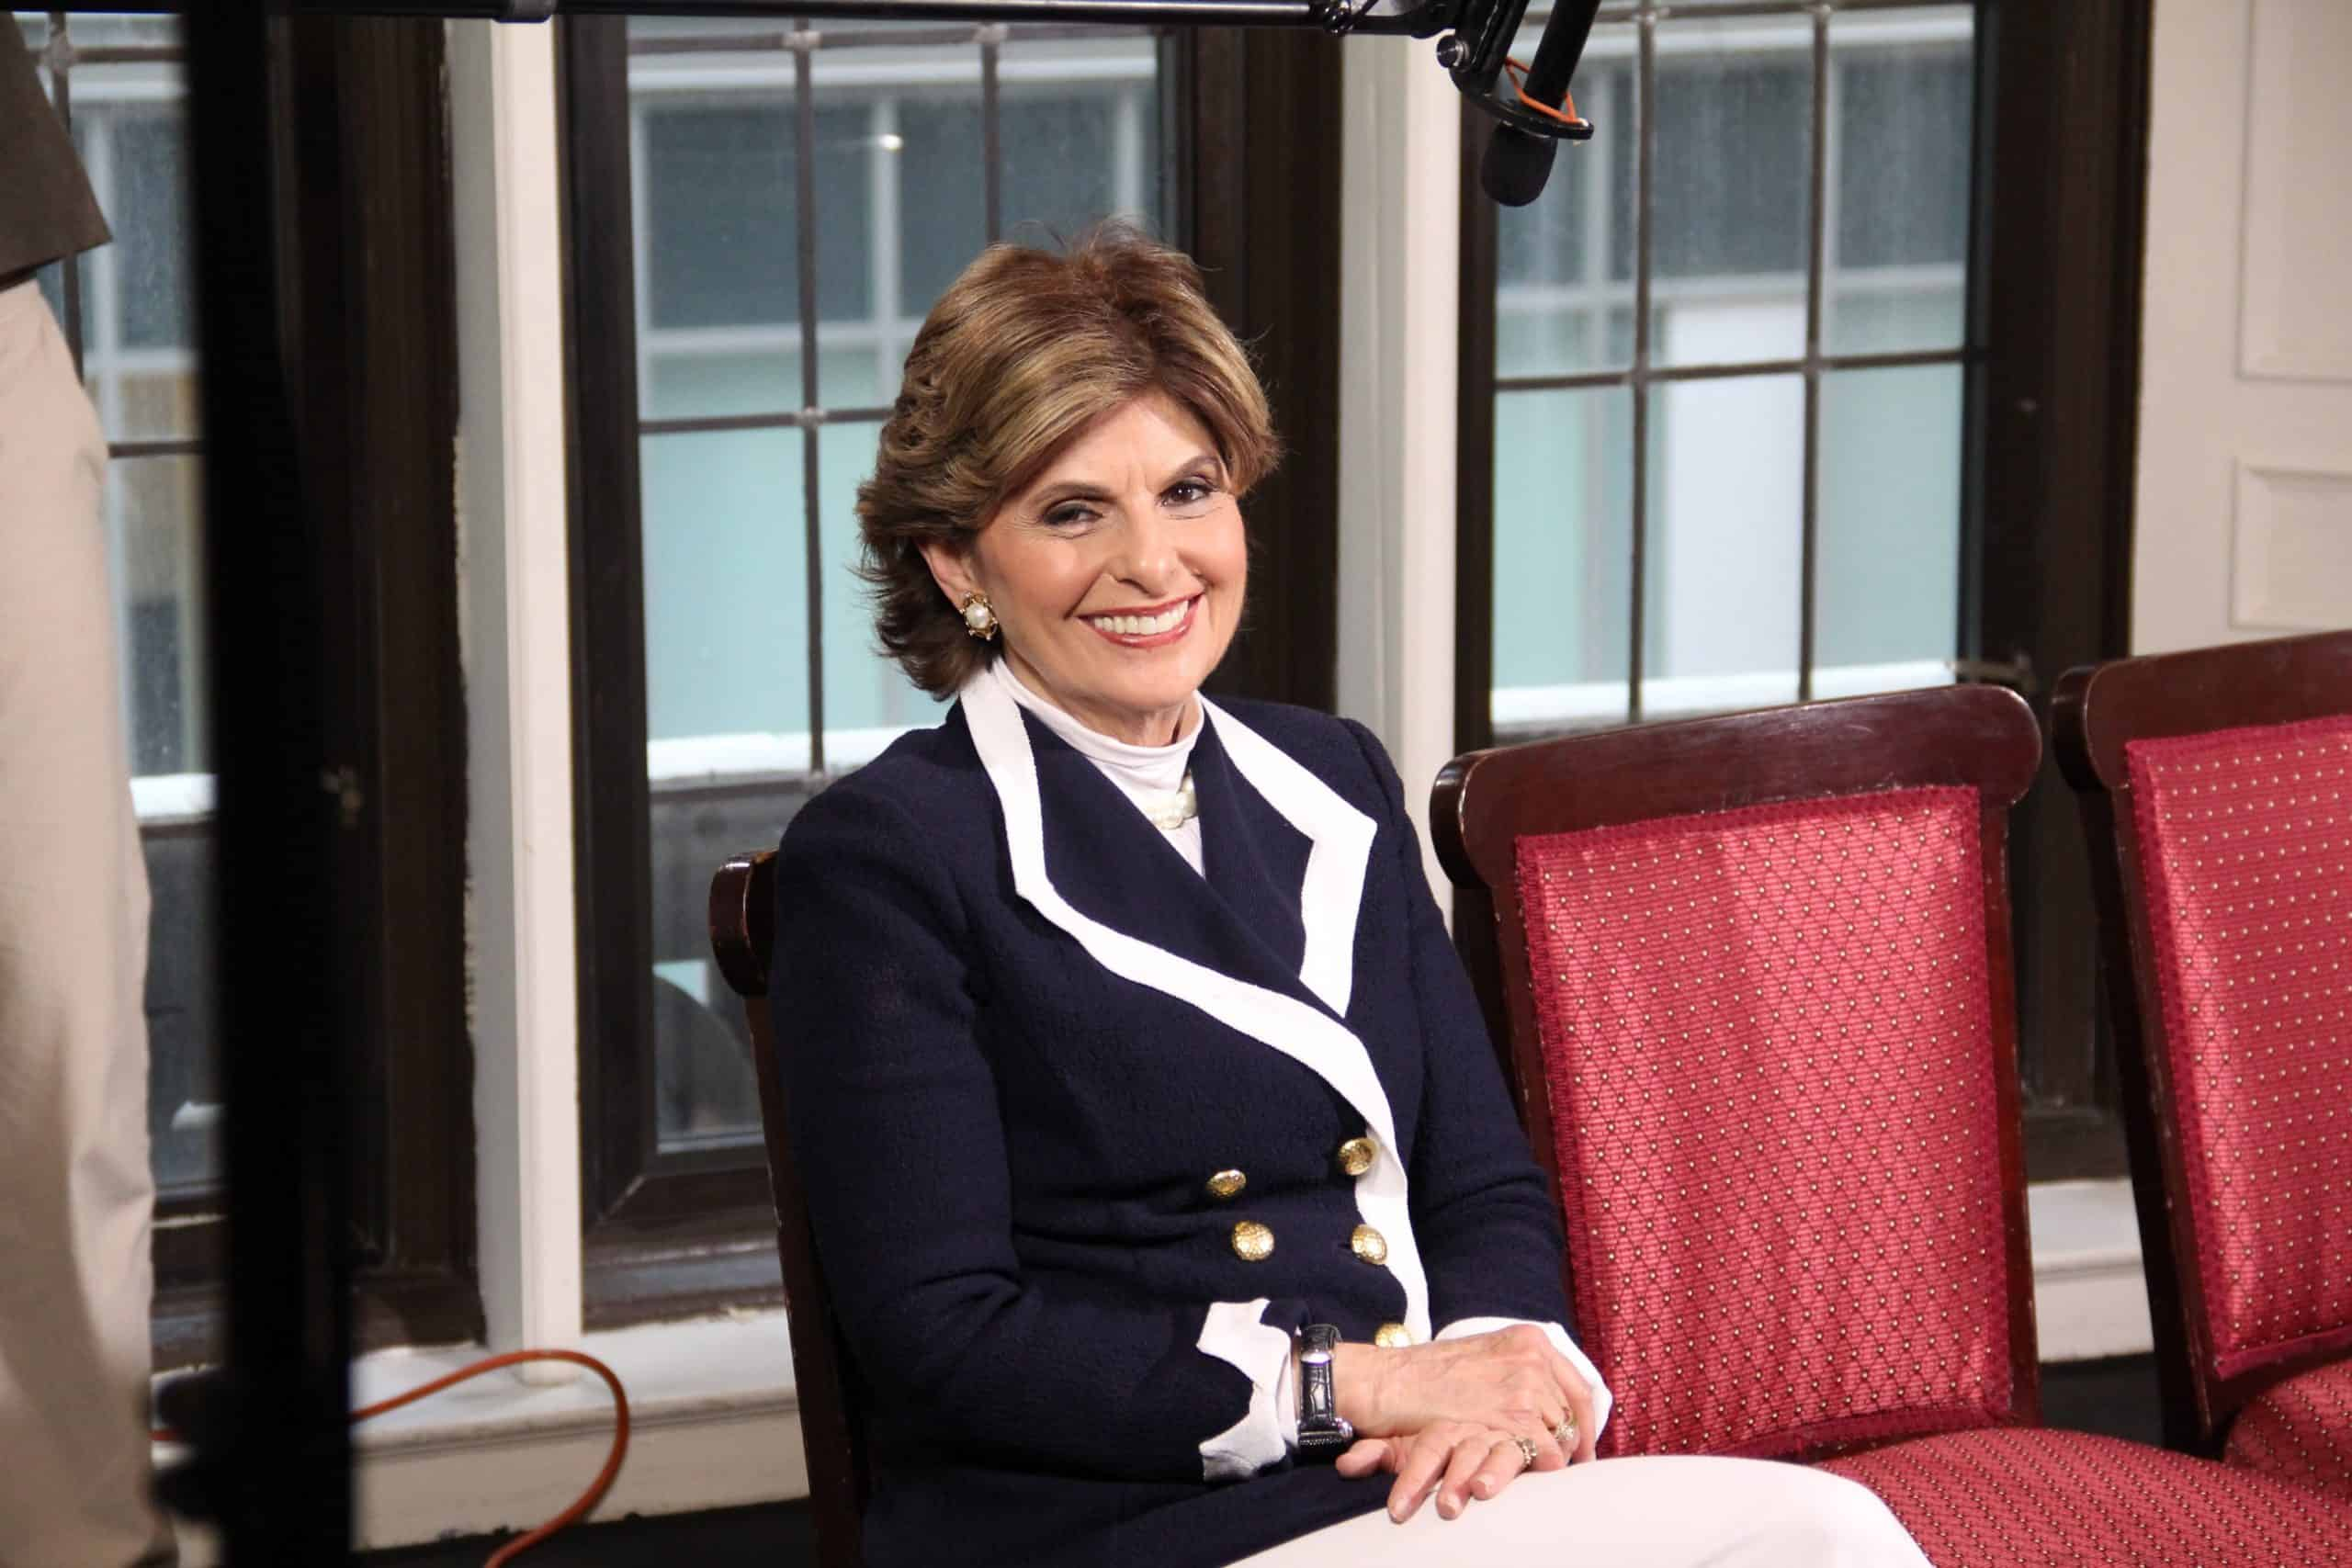 The New Yorker profiles NTL Executive Committee member Gloria Allred